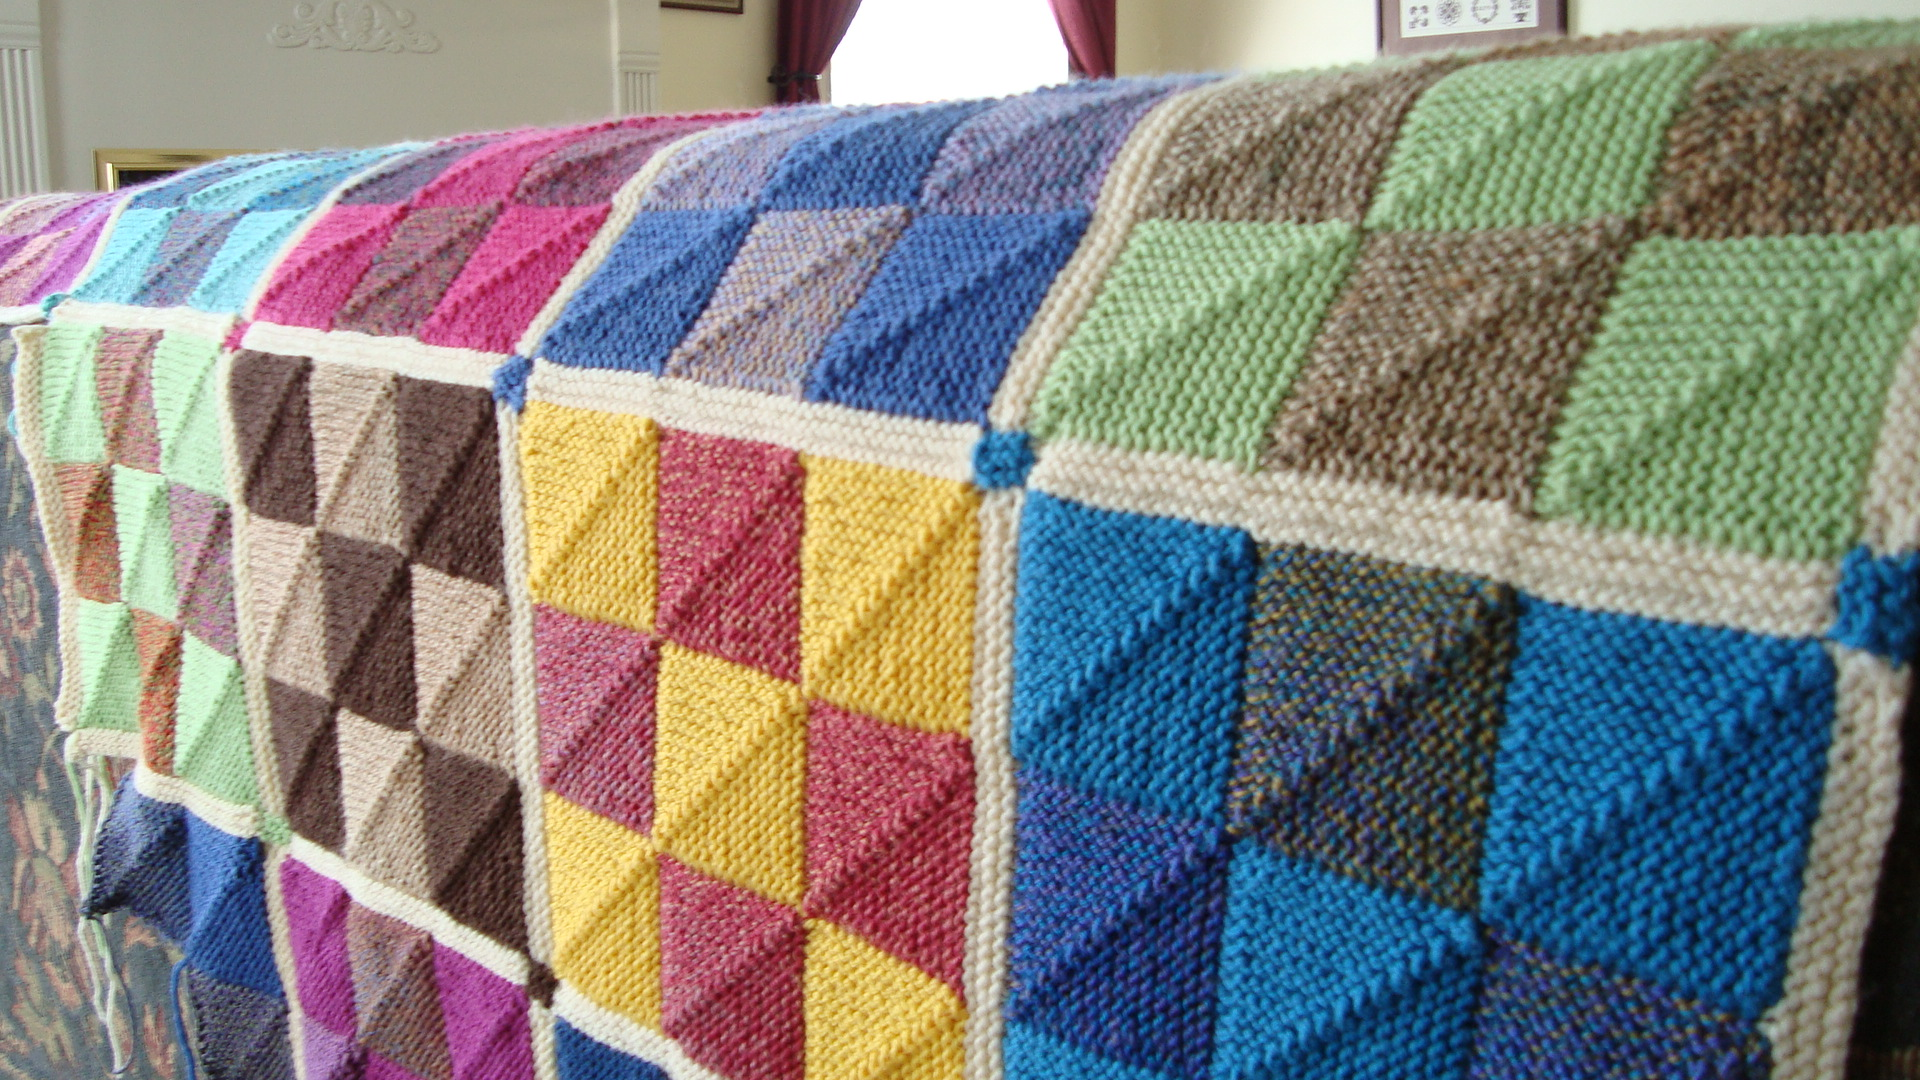 Knitting Patchwork Quilt Patterns : Image gallery knitted quilt